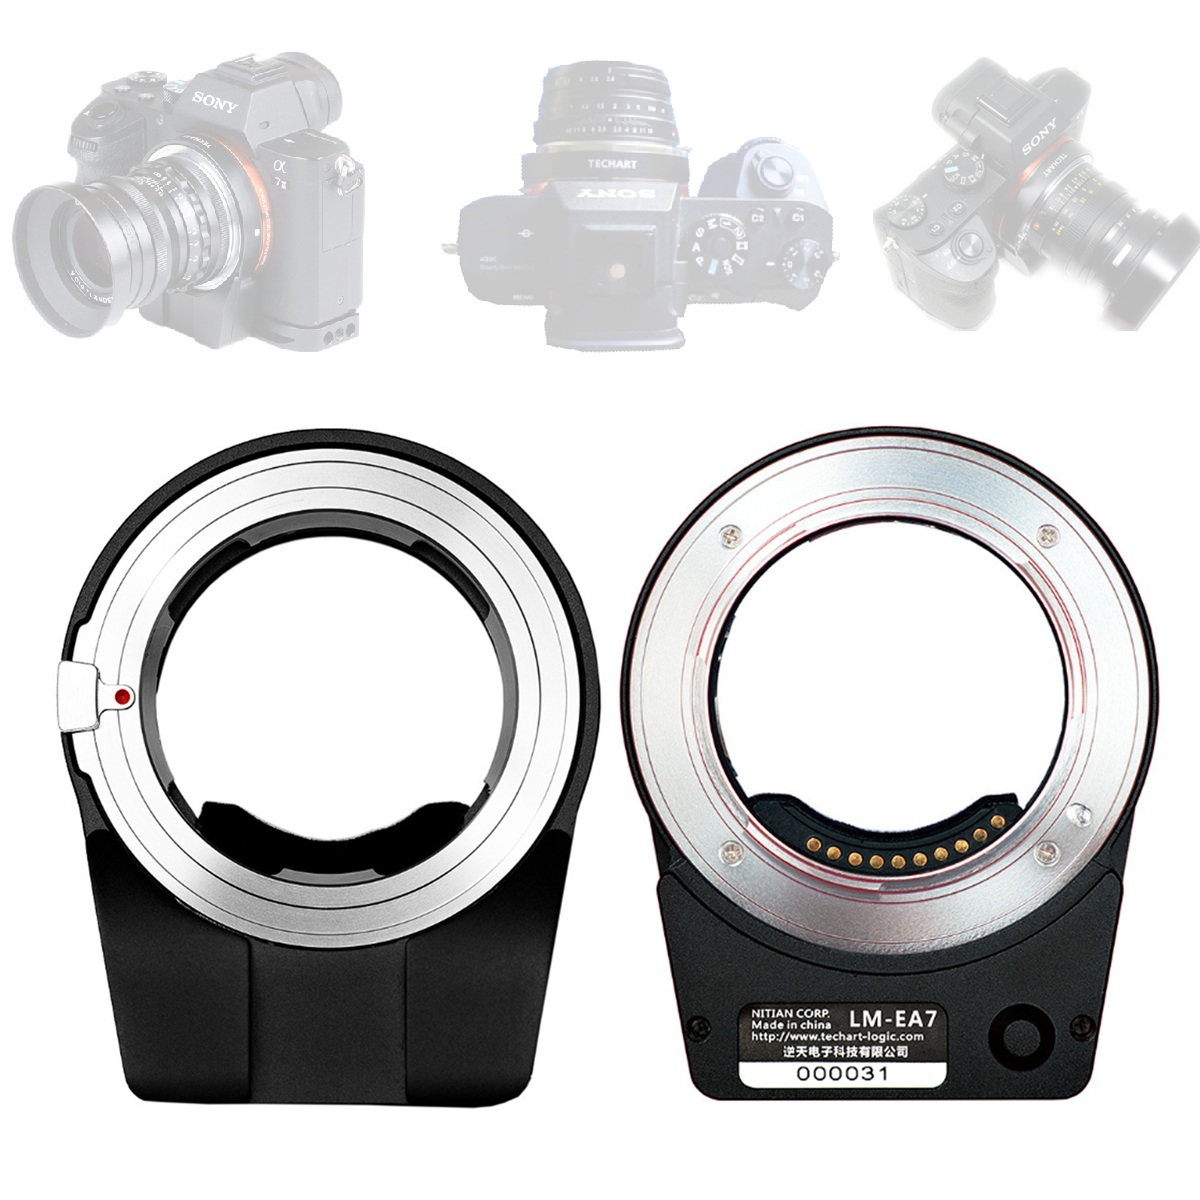 TECHART Pro LM-EA7 Auto Focus AF Lens Adapter Ring for Leica M LM Lens & Sony NEX E FE Mount MD/A/EF/FD/PK/M42/AI/EOS/LM-NEX цена